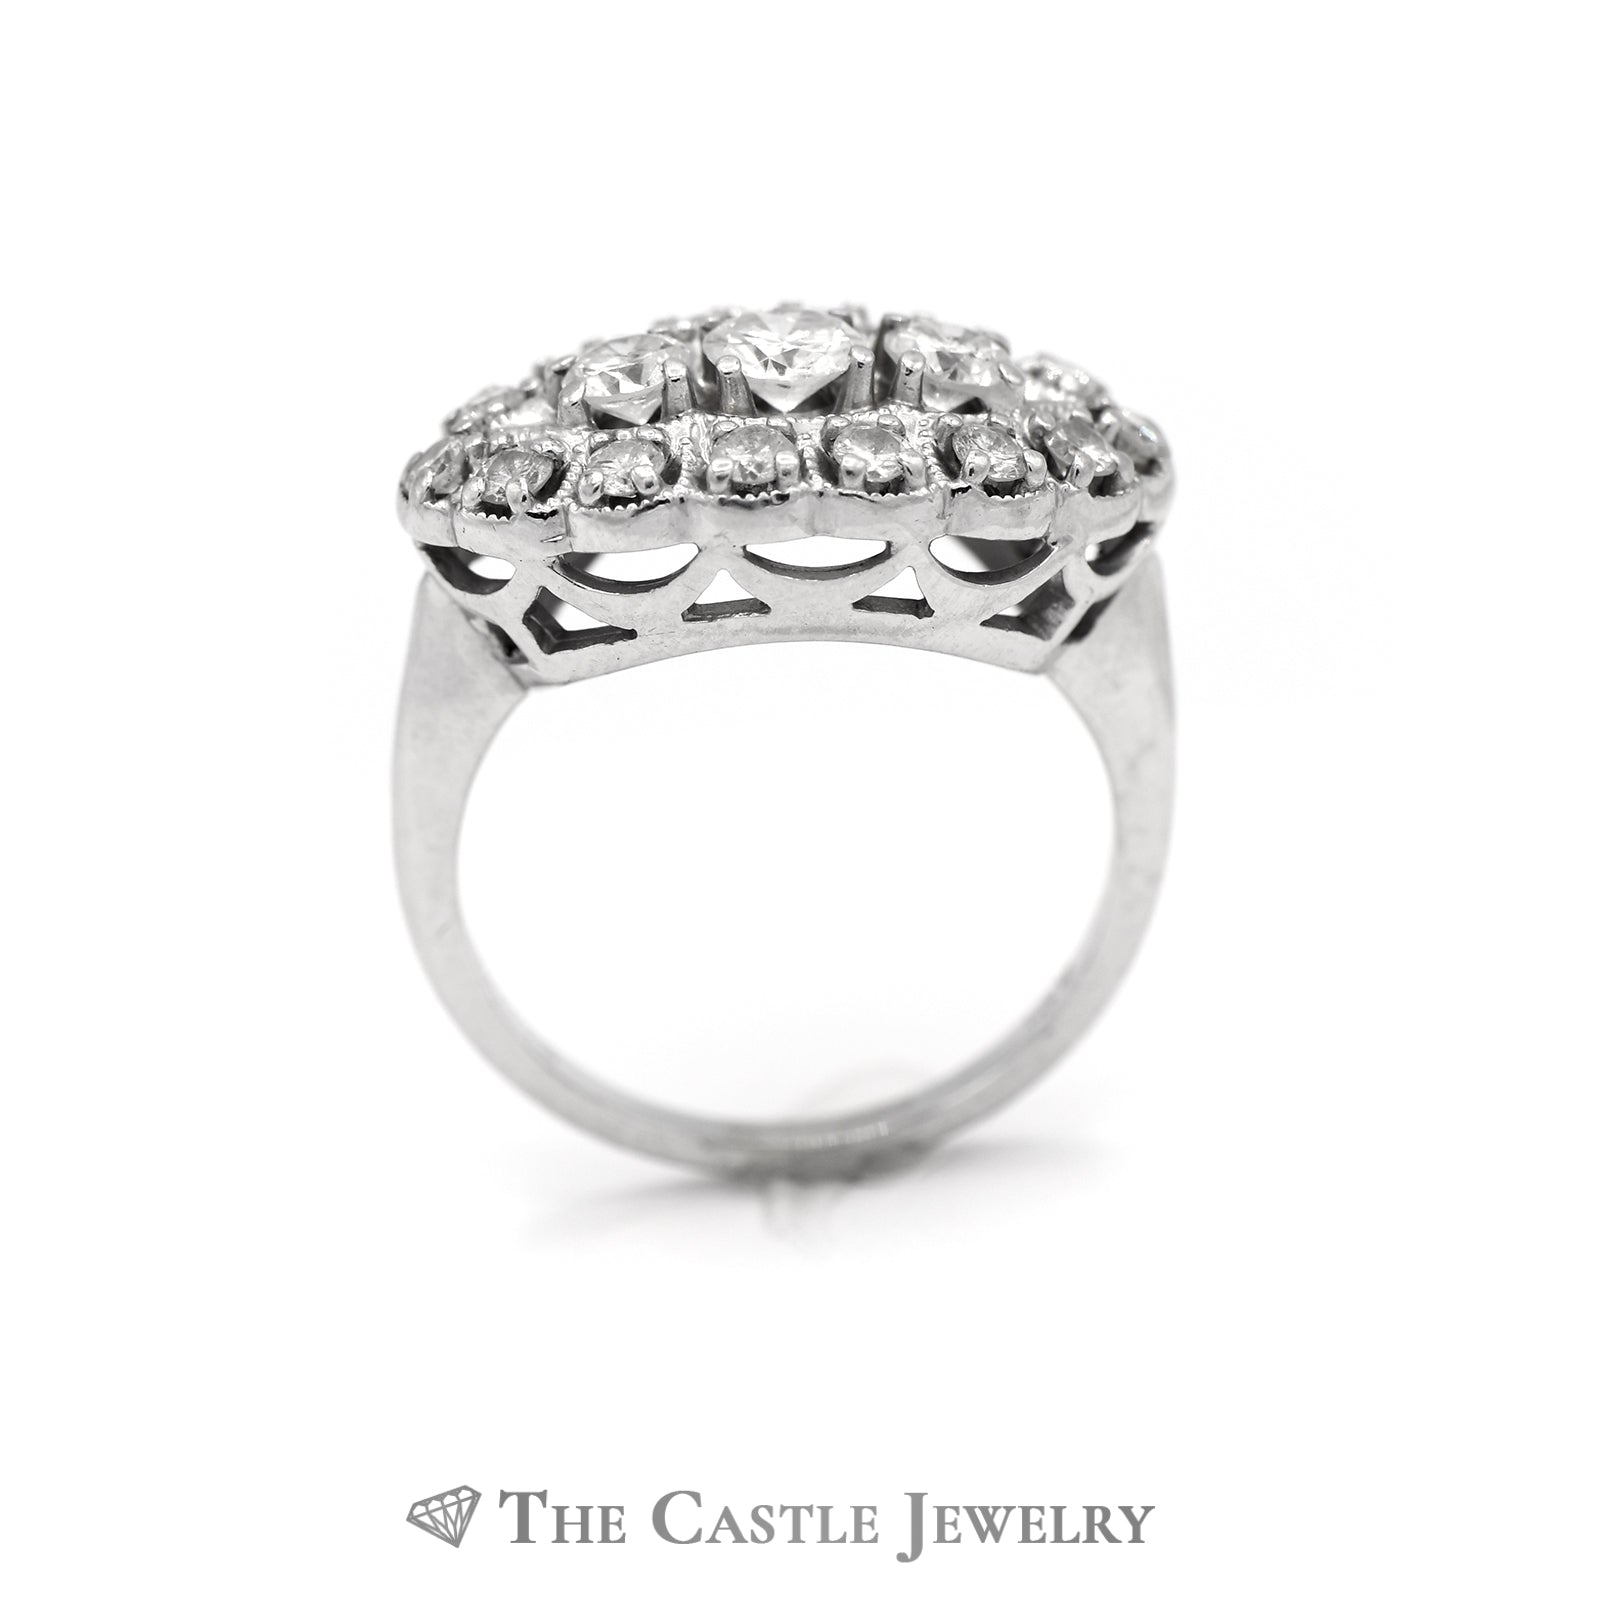 Oval Shaped 1cttw Diamond Cluster Ring in 14k White Gold-1